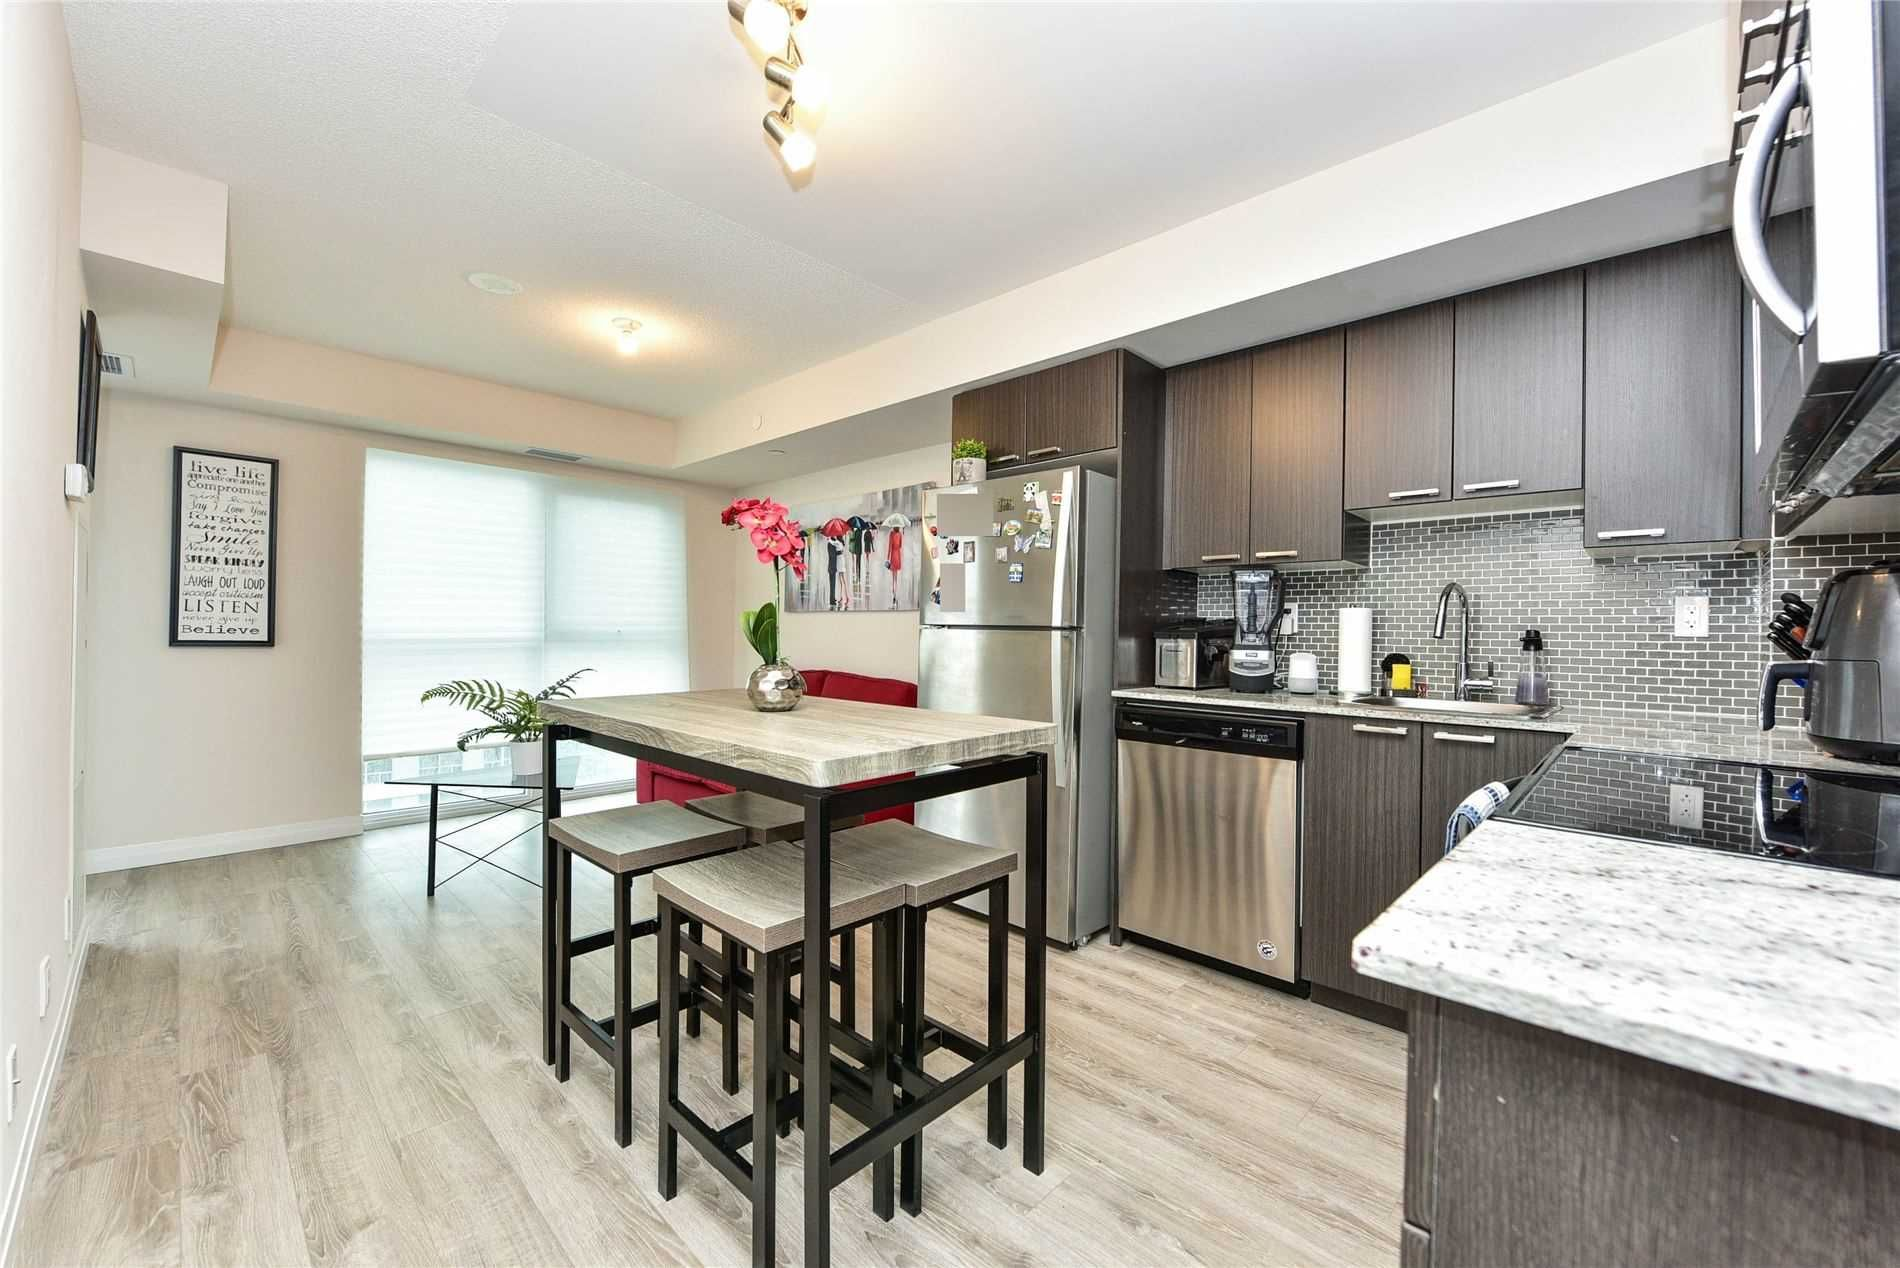 2152 Lawrence Ave E, unit 1107 for sale in Toronto - image #1